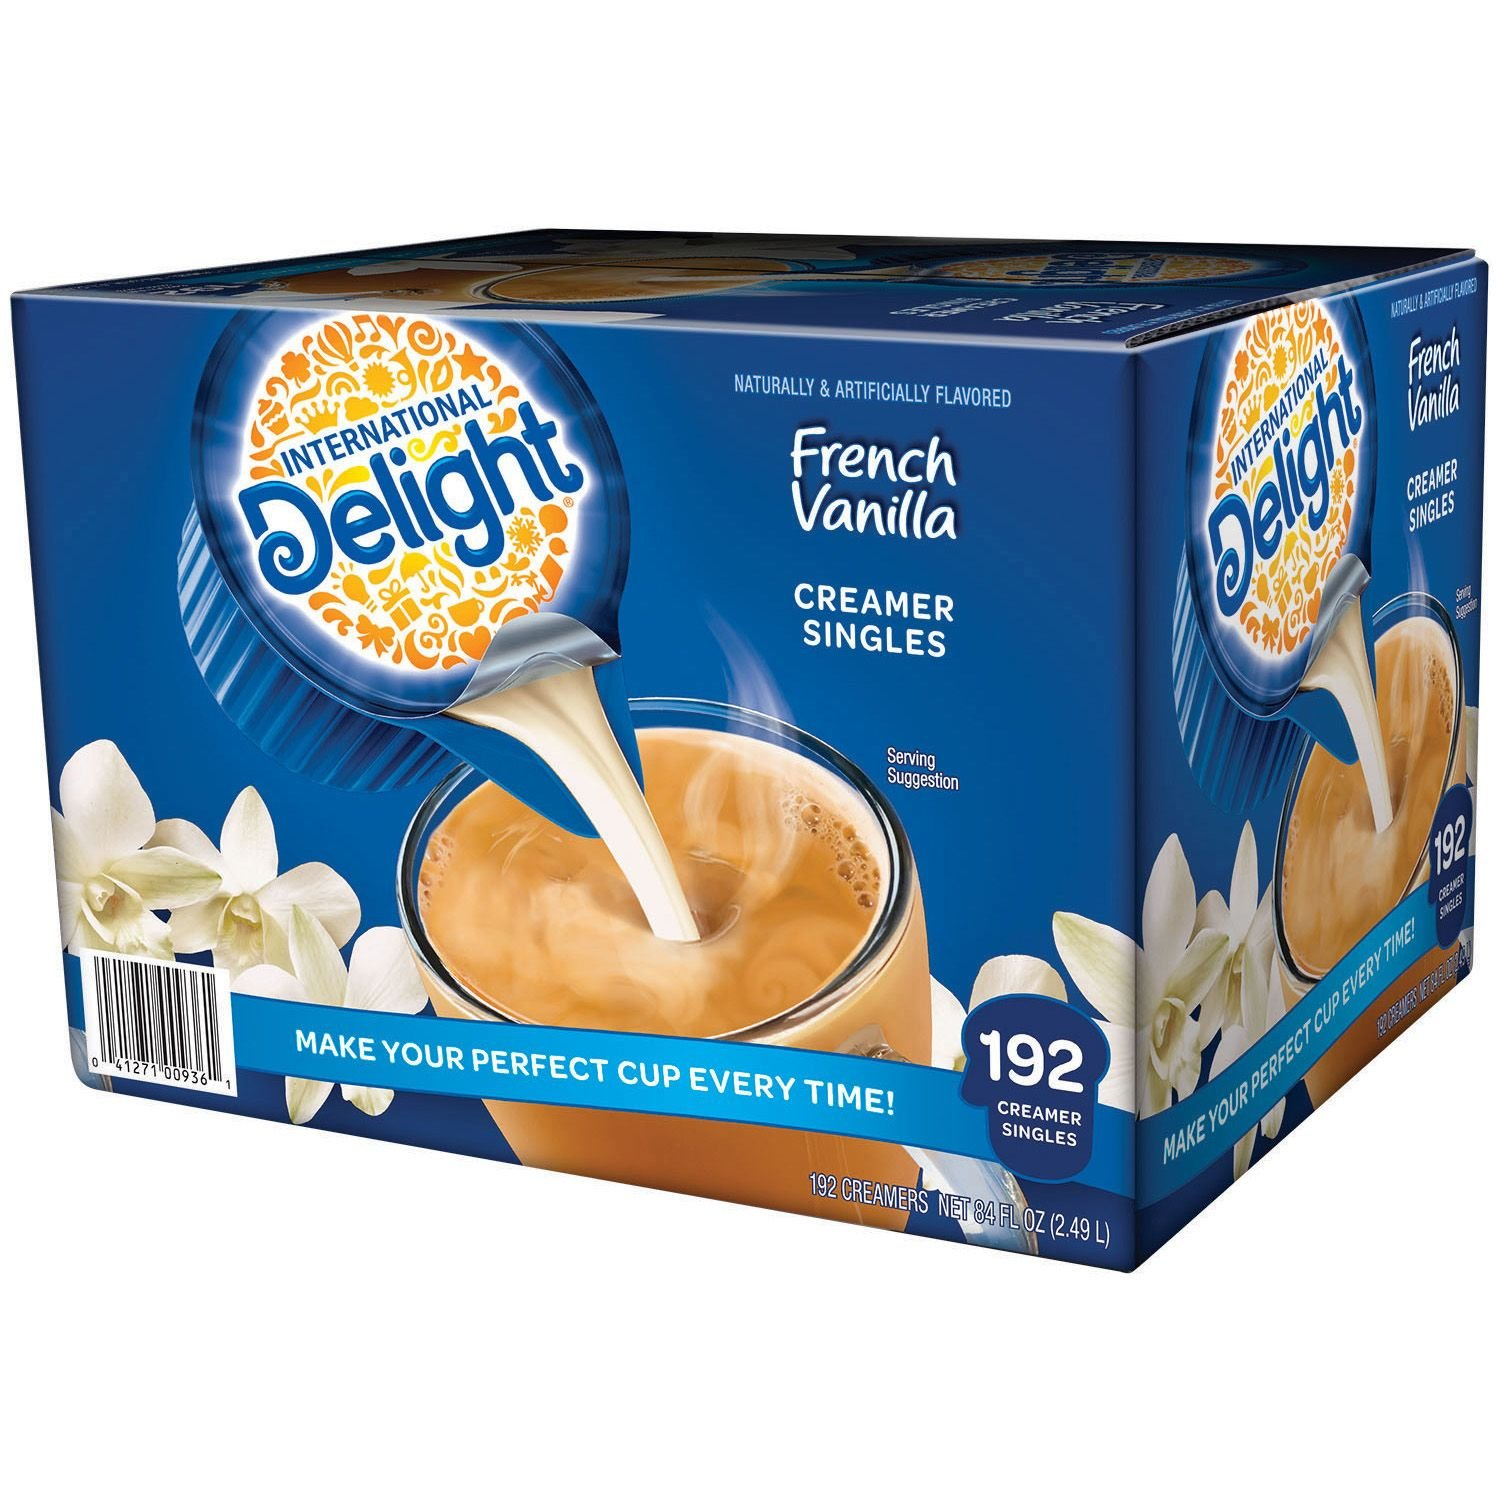 International Delight French Vanilla, 192 Count Single-Serve Coffee Creamers, Special Value 1 Pack